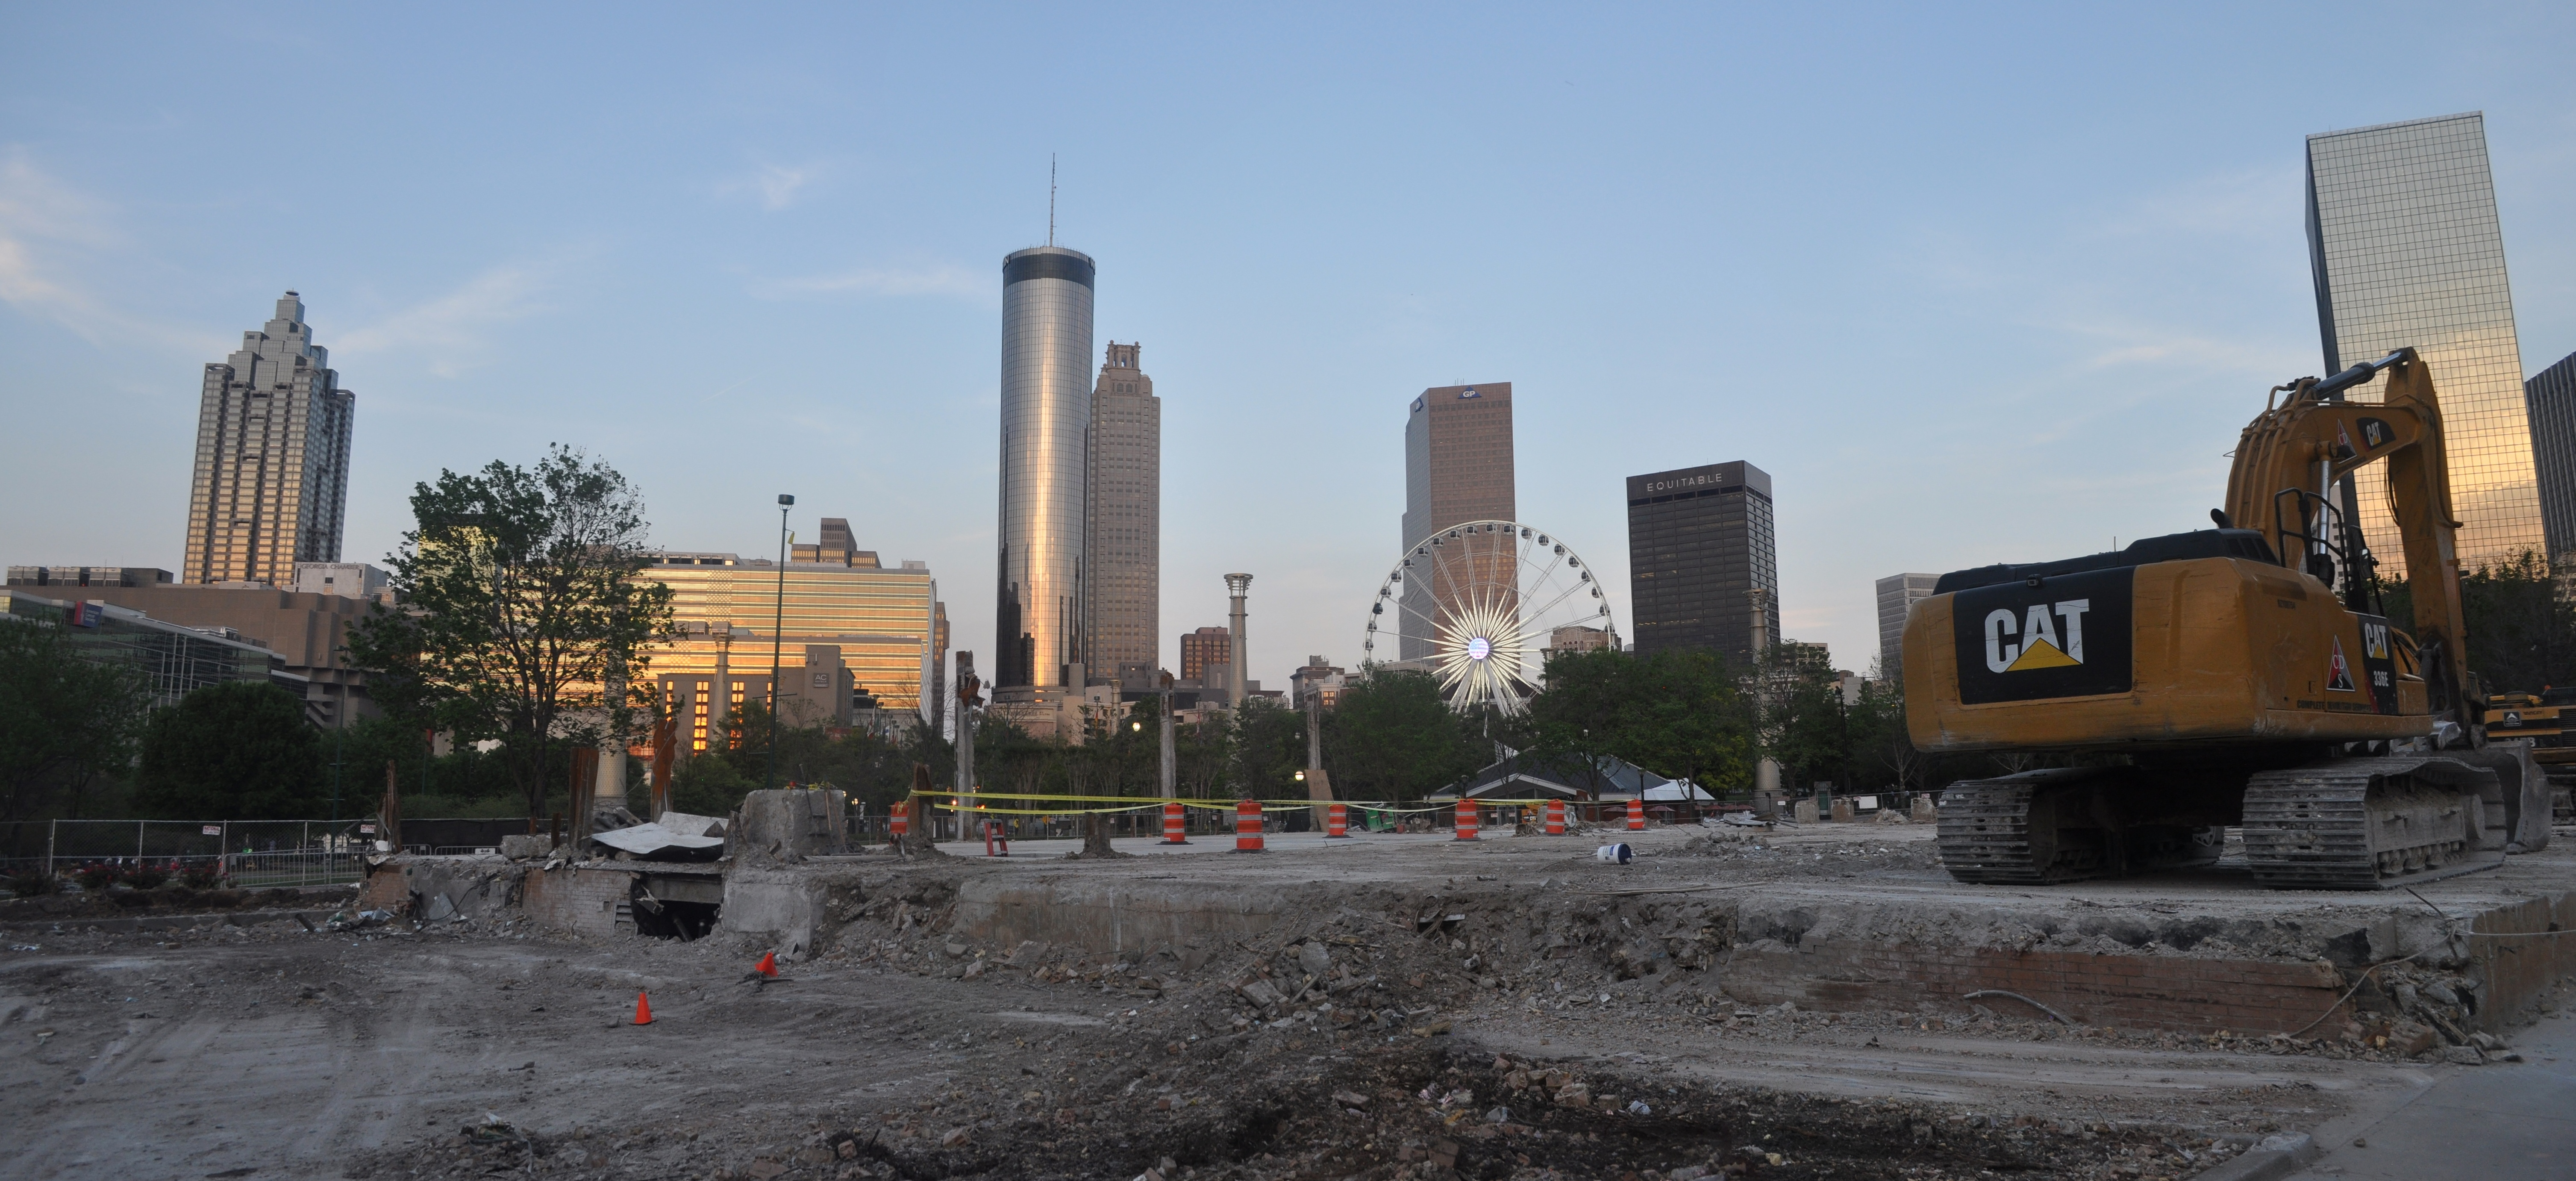 An excavator sits on the concrete slab of the old building, with the skyline and Ferris wheel in the background.